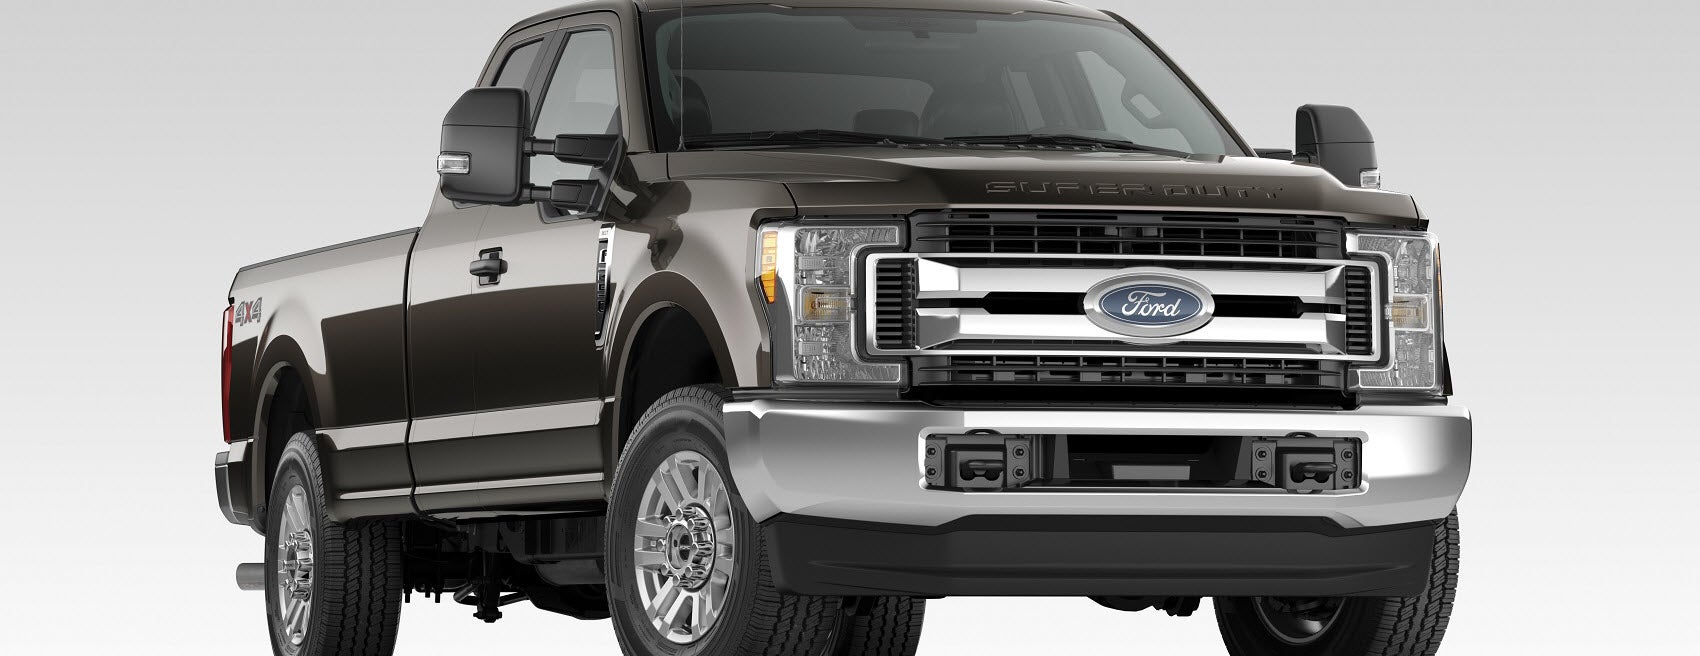 ford f 250 vs chevy silverado 2500 beaumont tx kinsel ford ford f 250 vs chevy silverado 2500